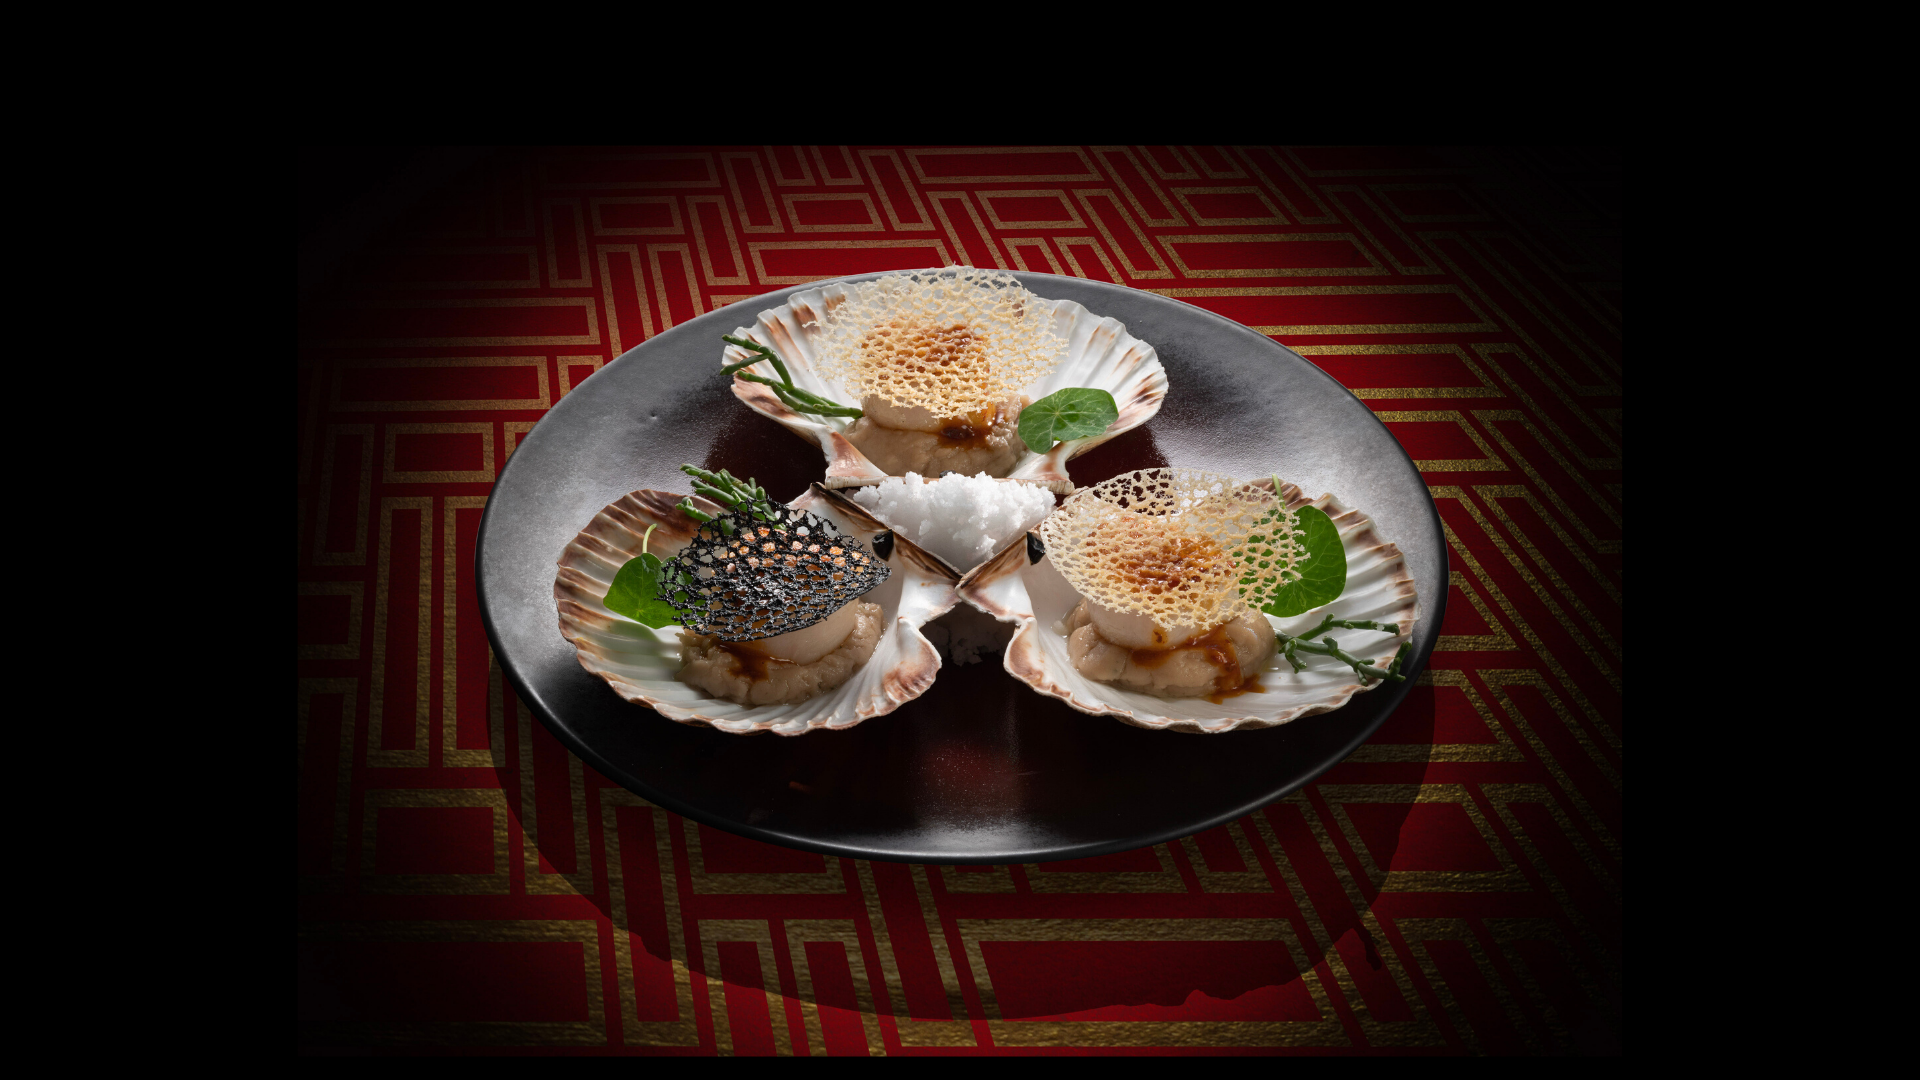 Three scallops served inside seashells on a plate